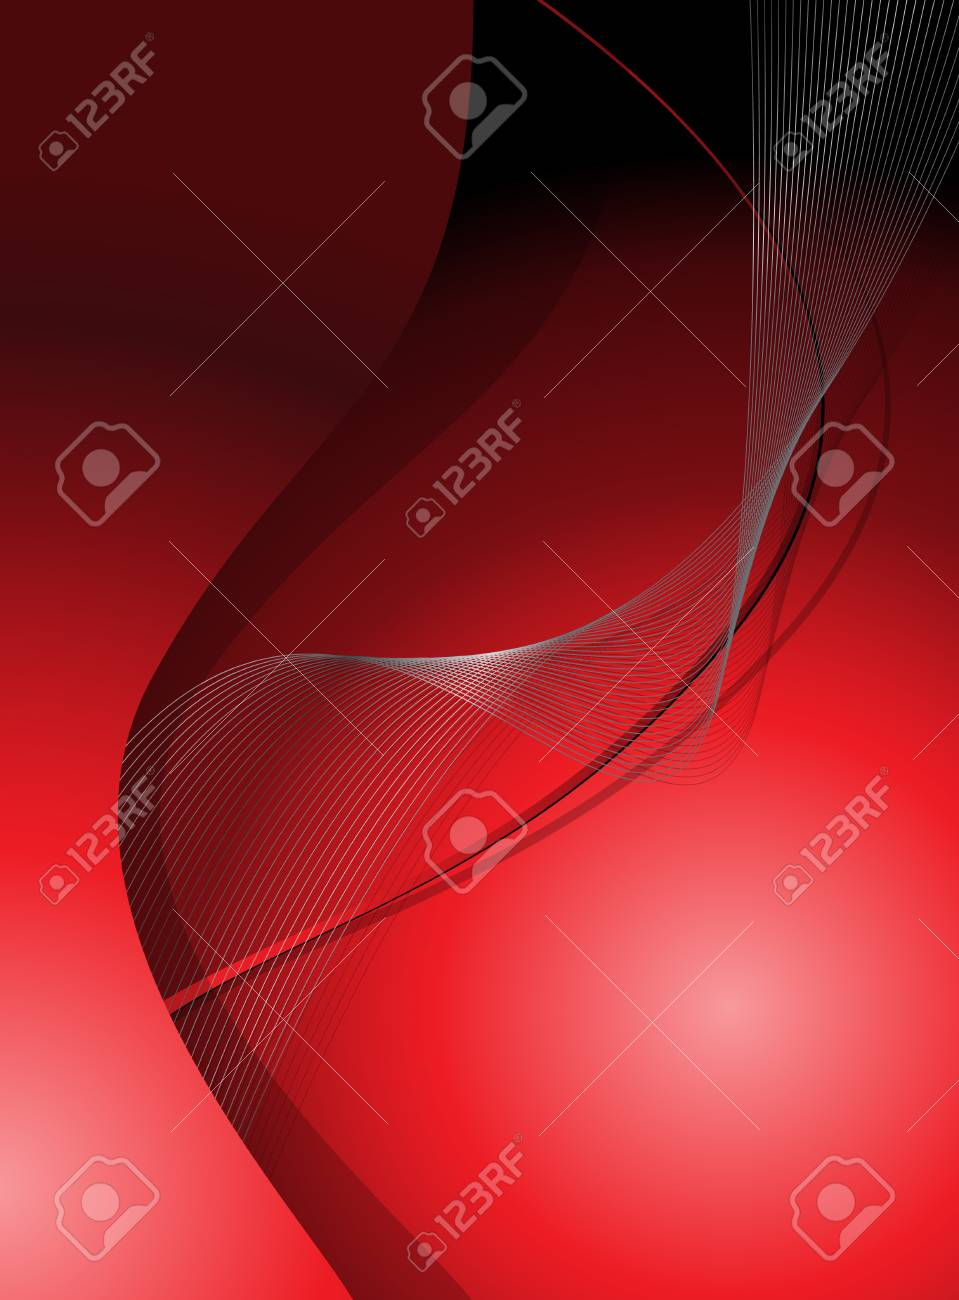 Abstract background, red with fantasy lines Stock Vector - 7131435